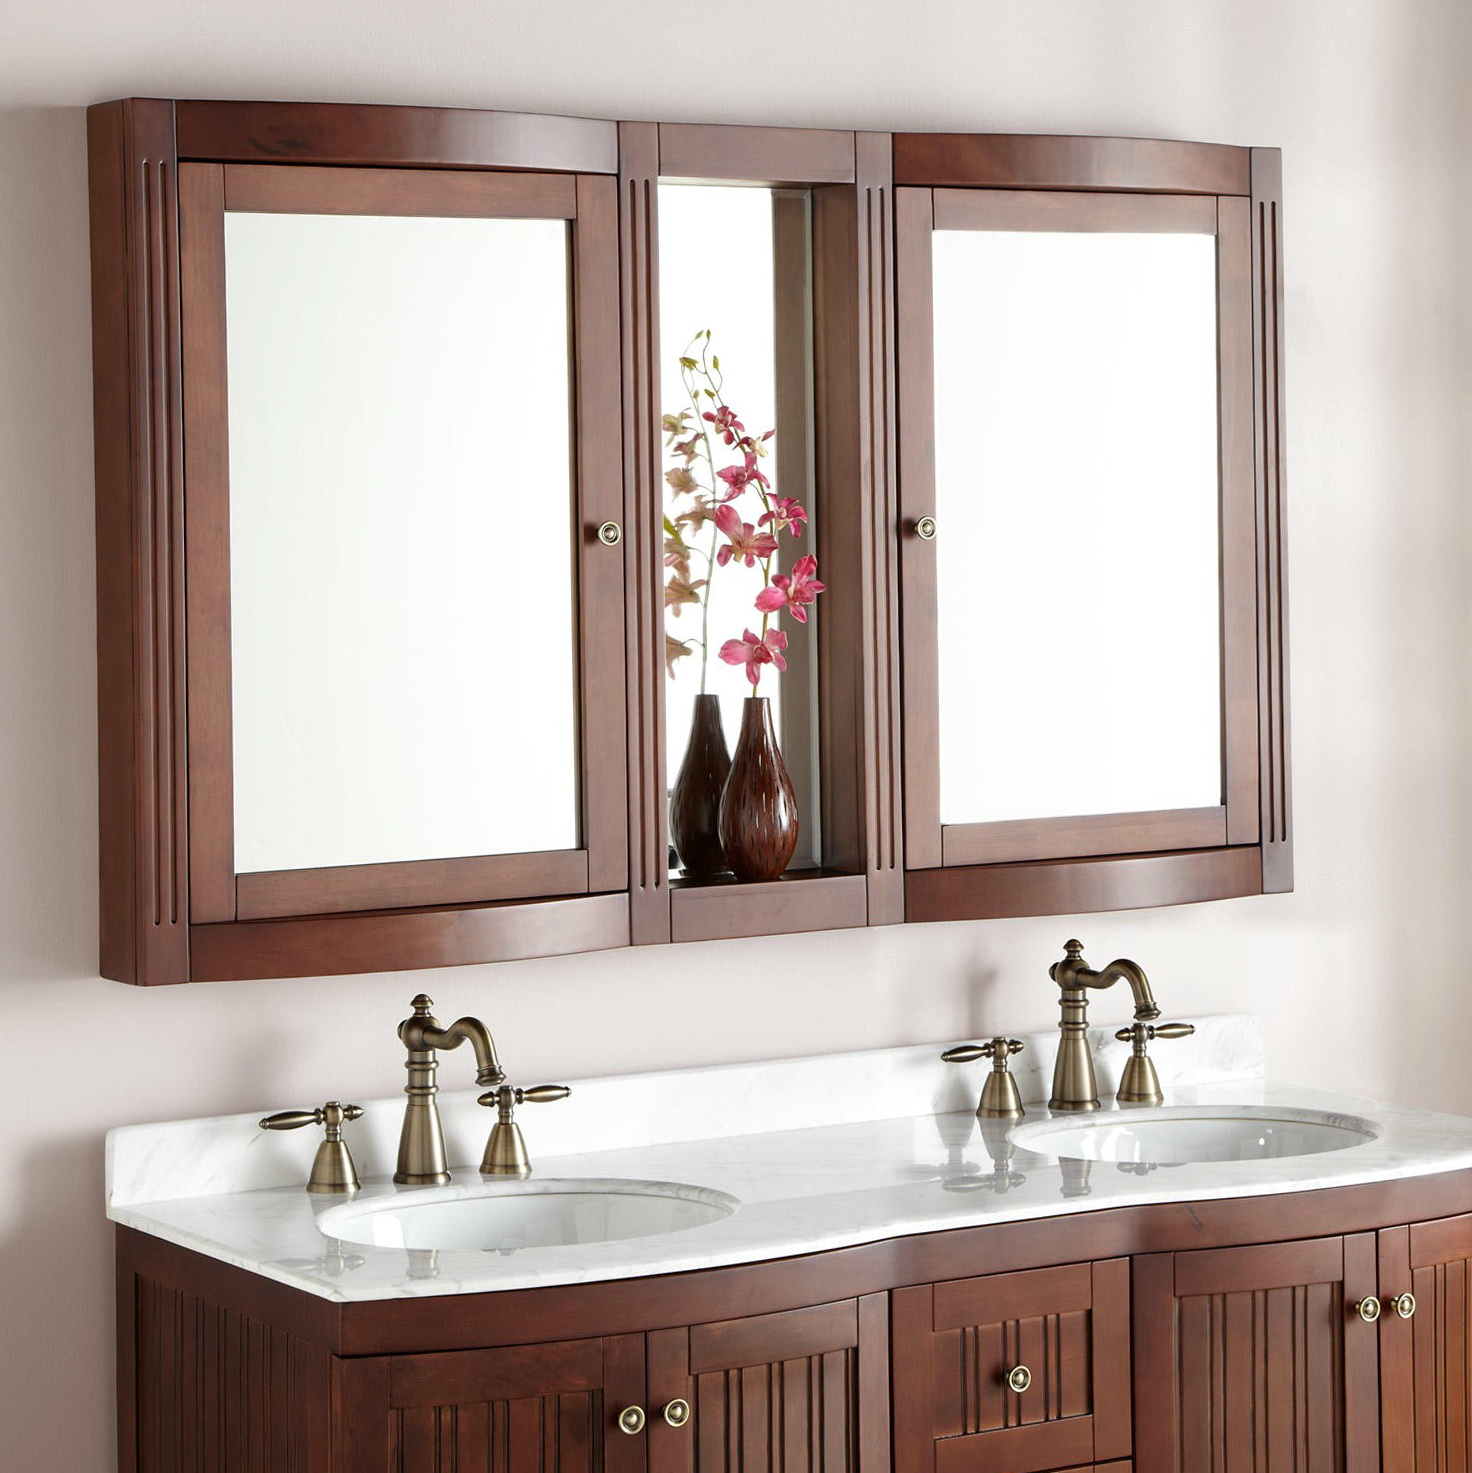 60 Inch Mirror Medicine Cabinet Home Design Ideas